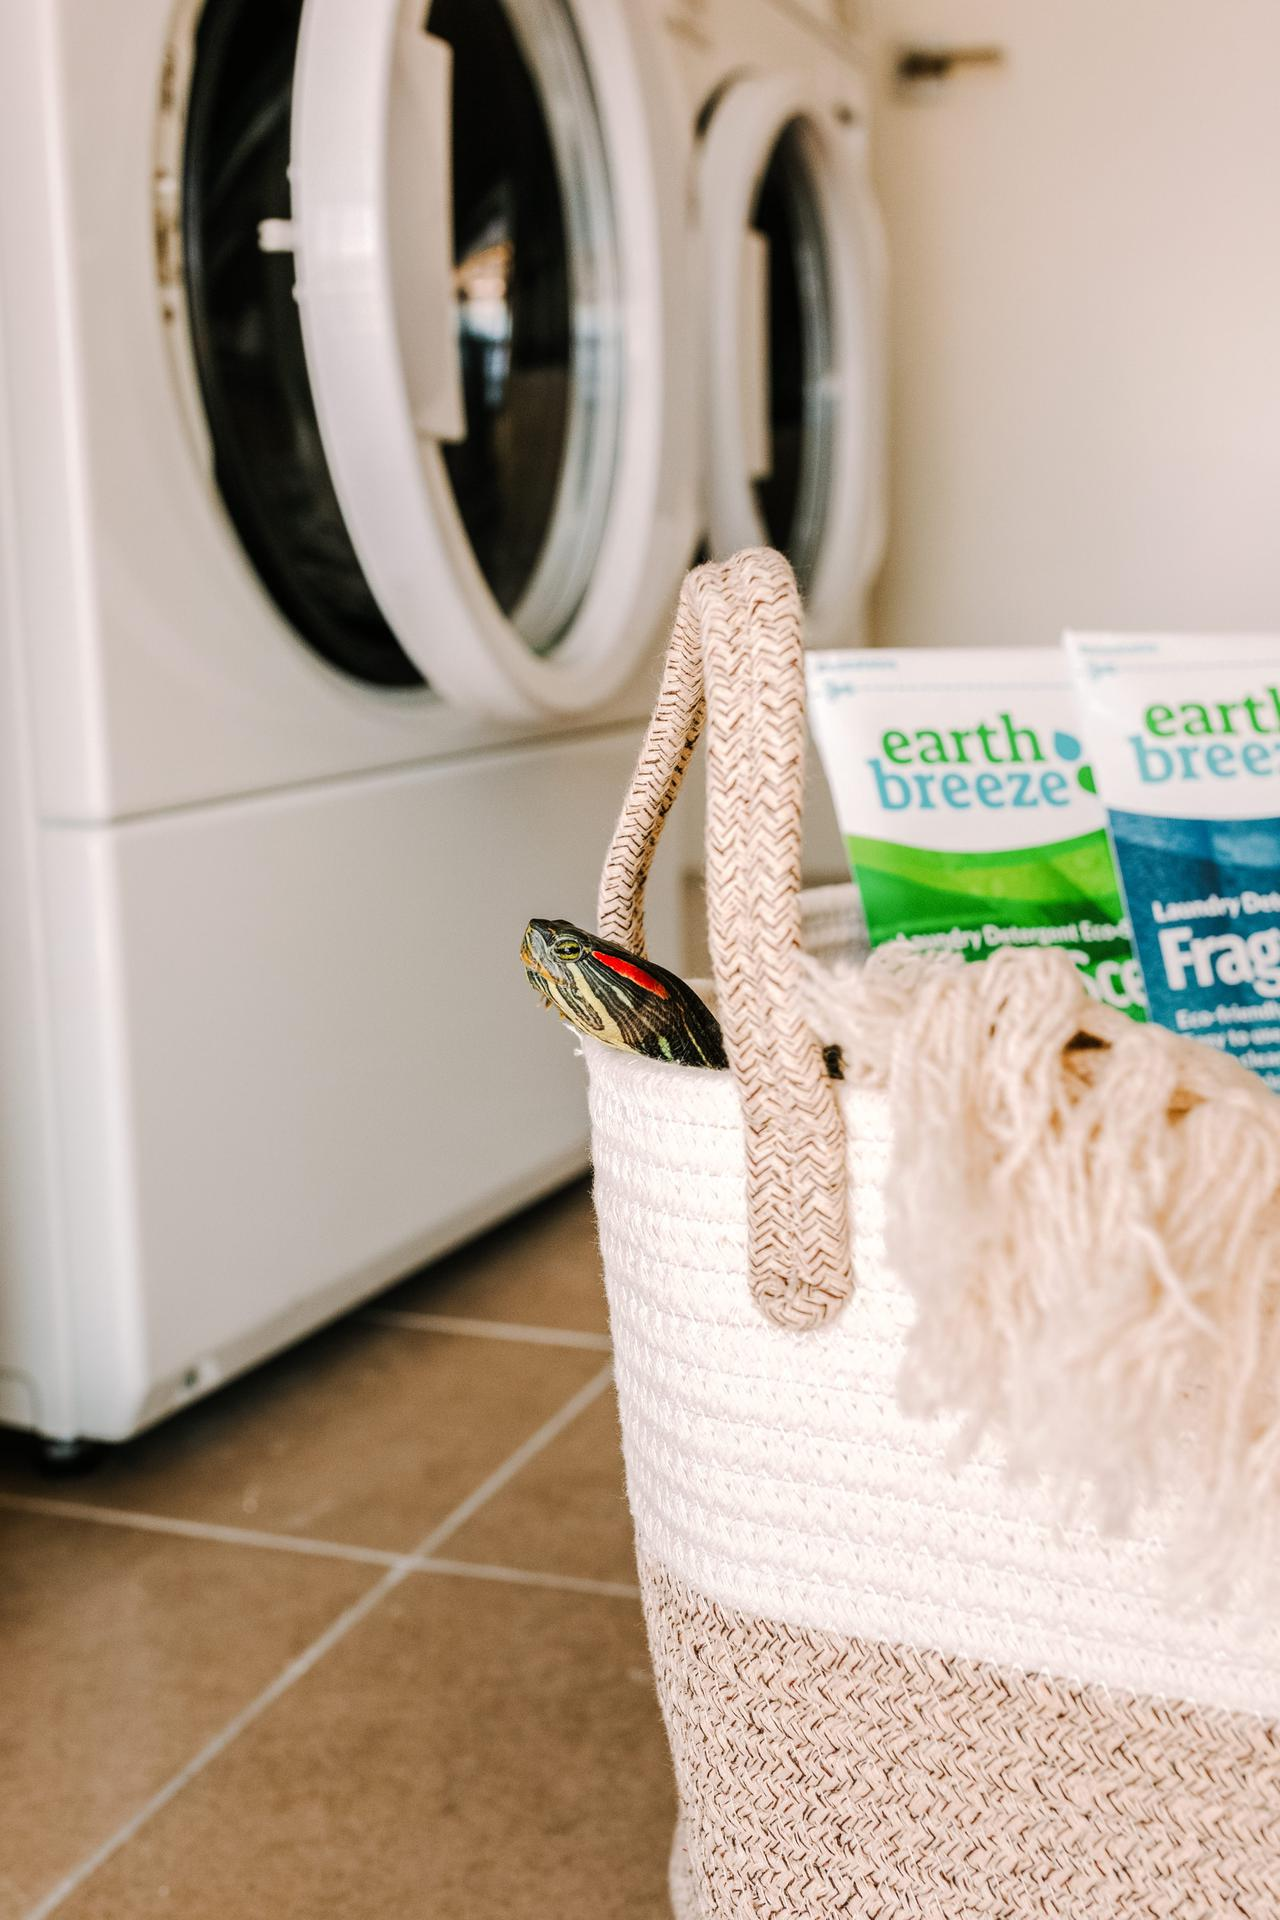 eco-friendly laundry detergent in a basket in front of a washer and dryer